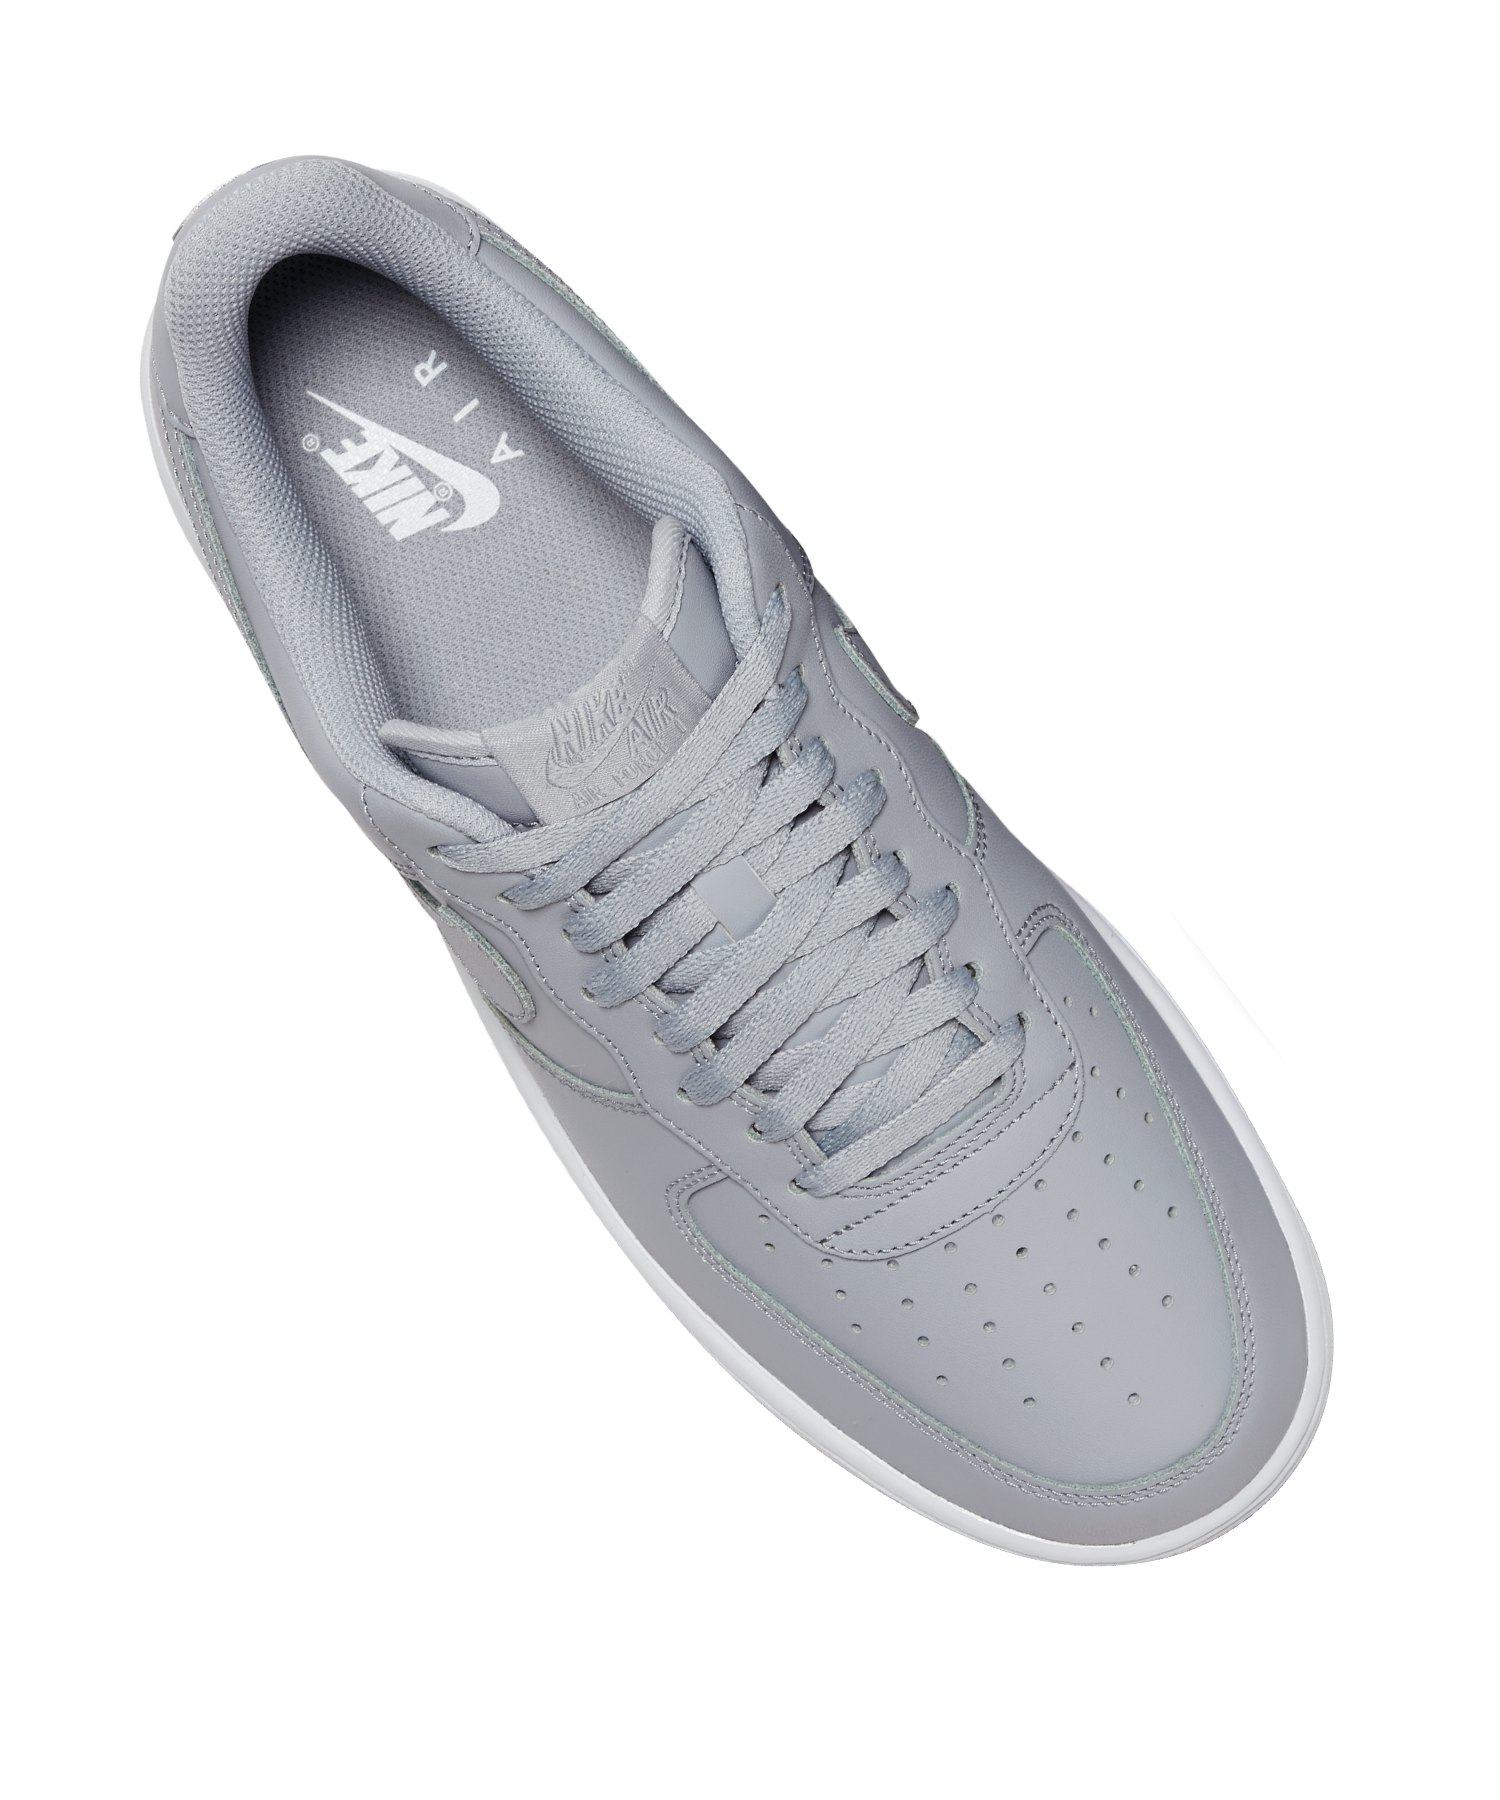 F010 '07 Grau Nike Sneaker 1 Force Weiss Air cj53L4ARq